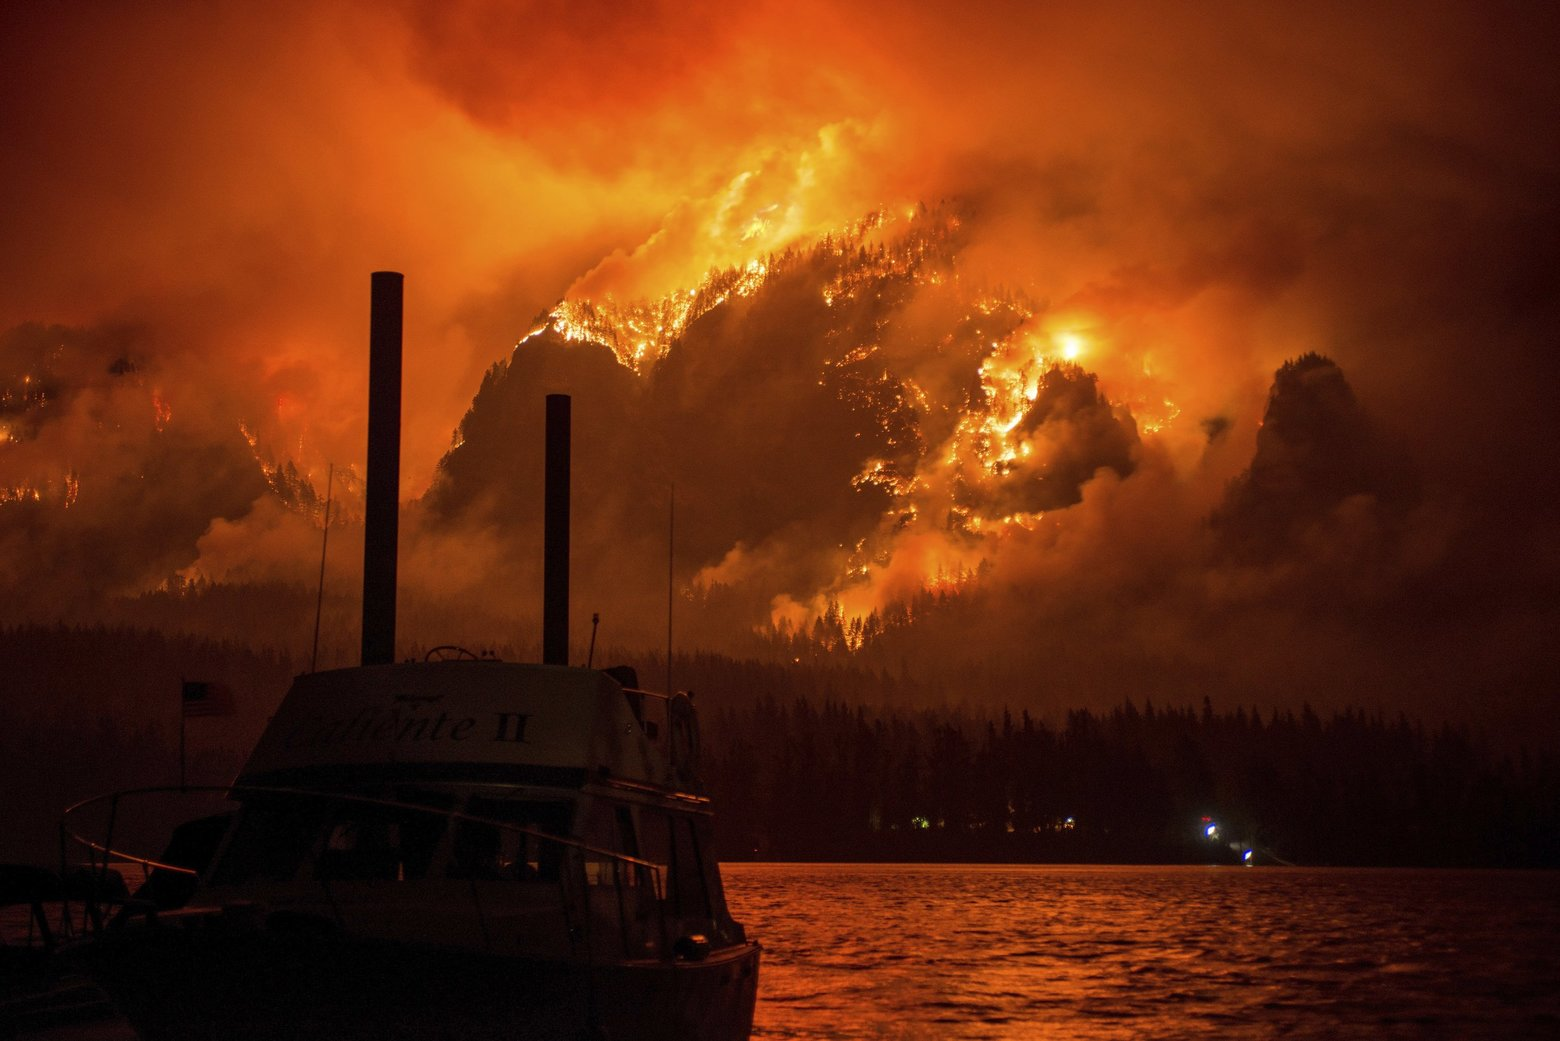 America won't stop burning anytime soon